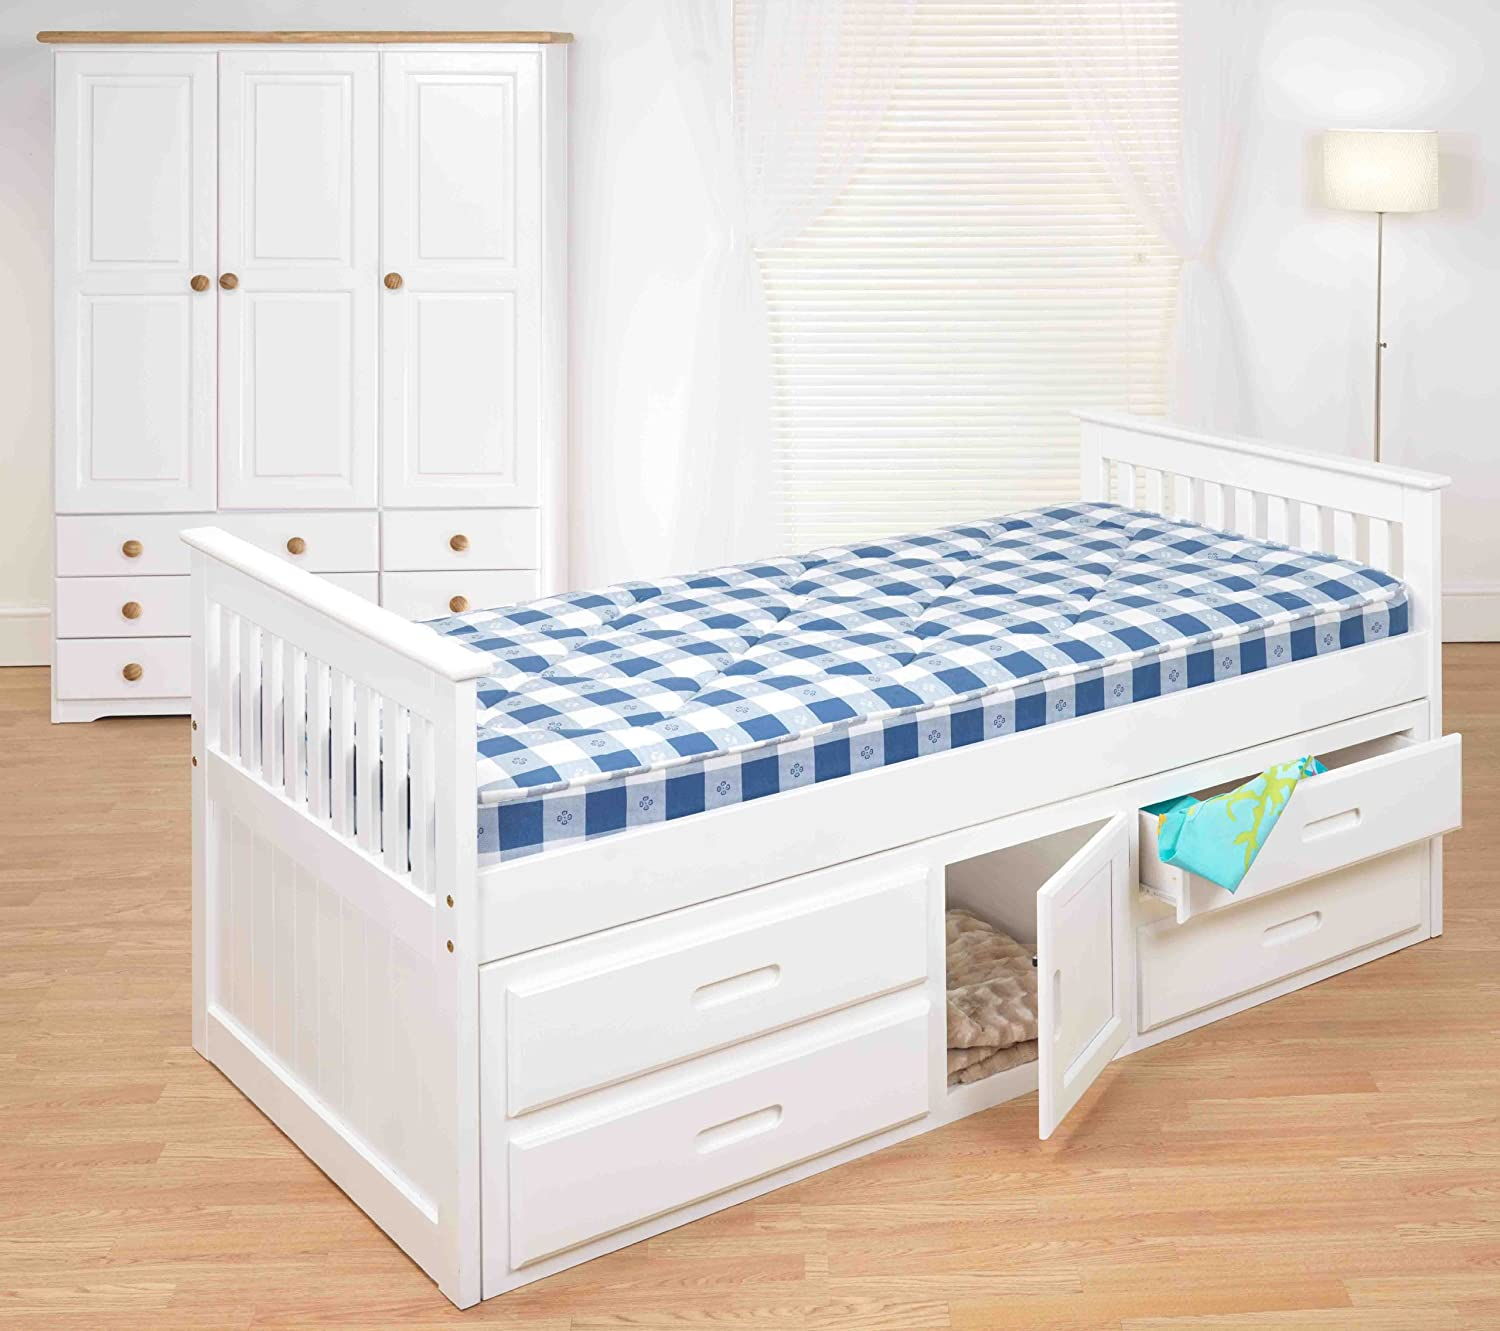 White Single Bed With Storage Part - 19: Captains Single 3ft Cabin Bed - Pine Storage Bed Frame. Amani. Waxed Pine  Or White Finish.